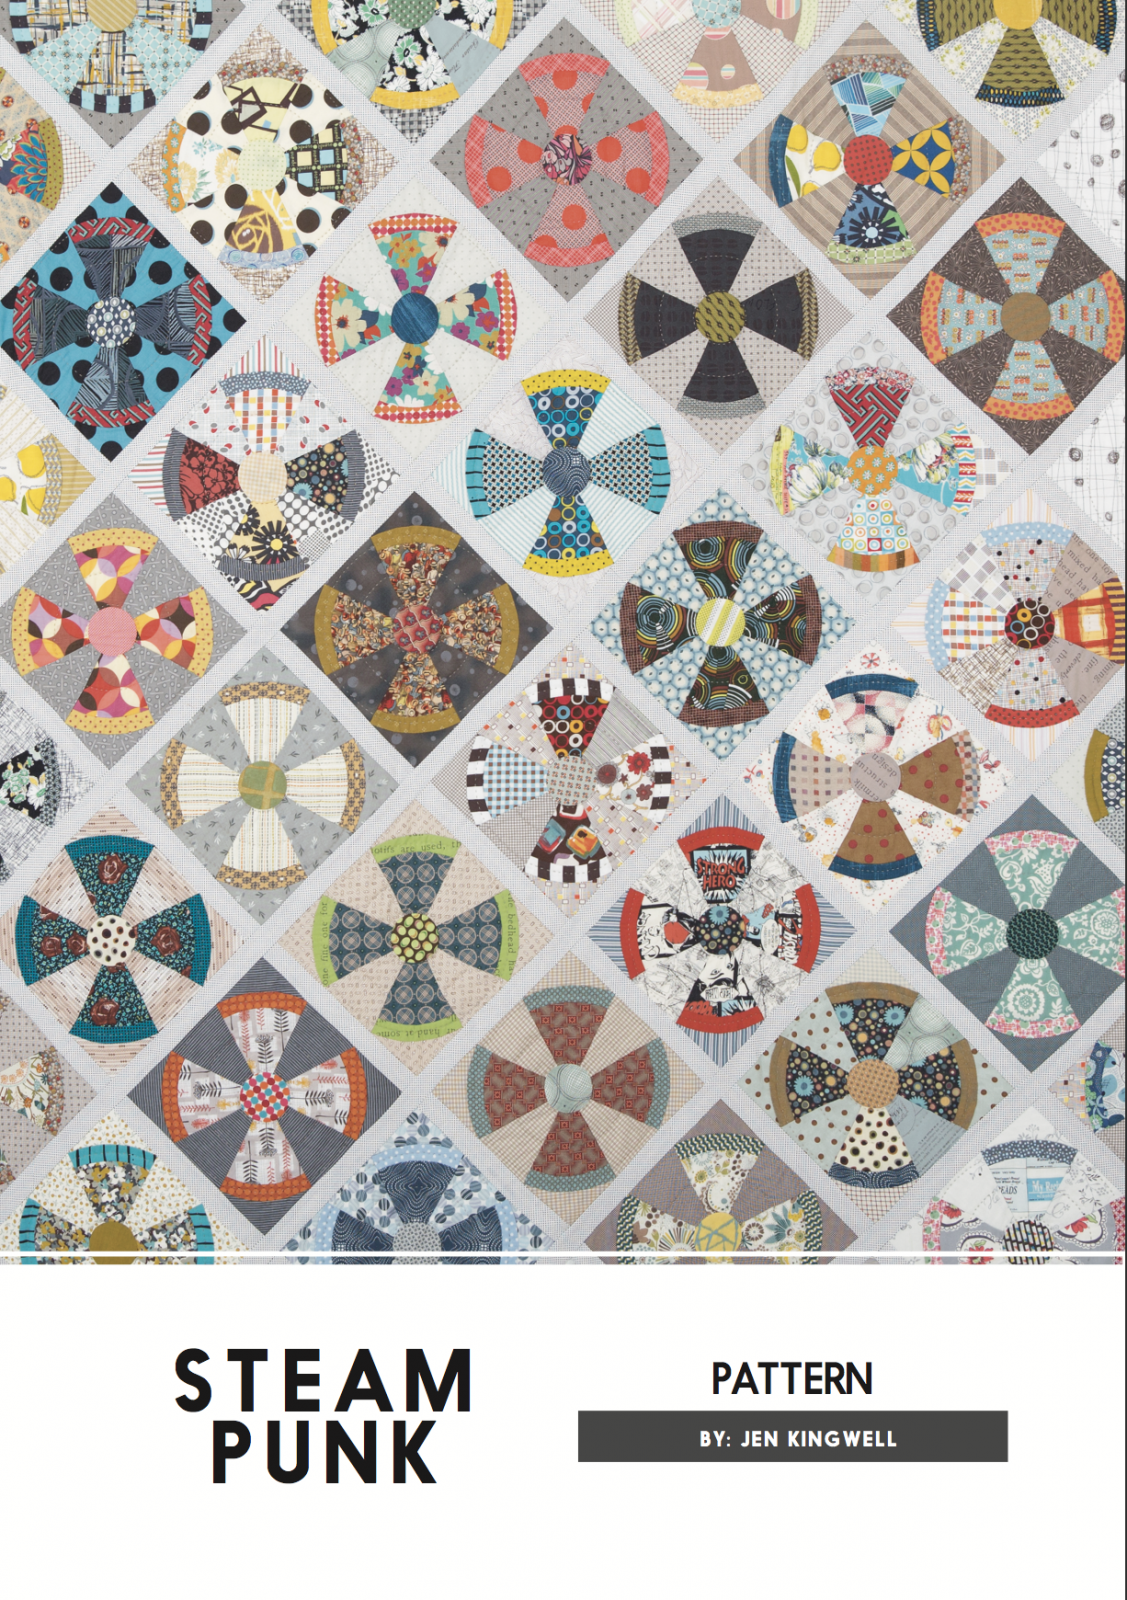 Steam Punk Pattern by Jen Kingwell